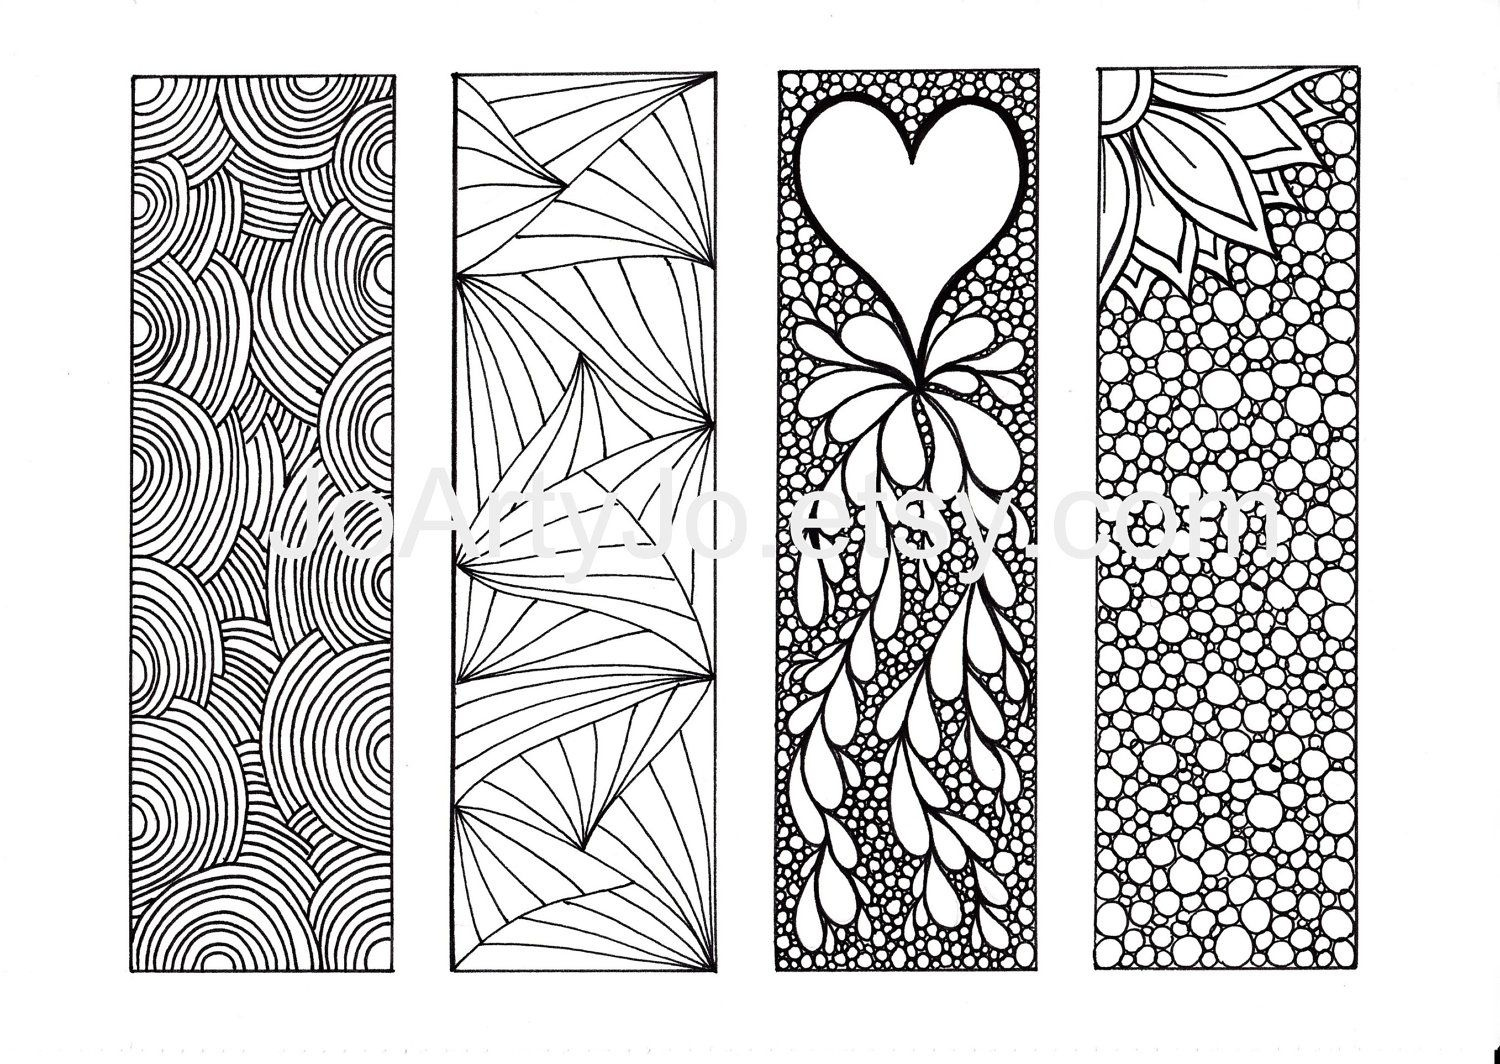 Free Coloring Pages For Adults Bookmarks - Coloring Home - Free Printable Bookmarks To Color